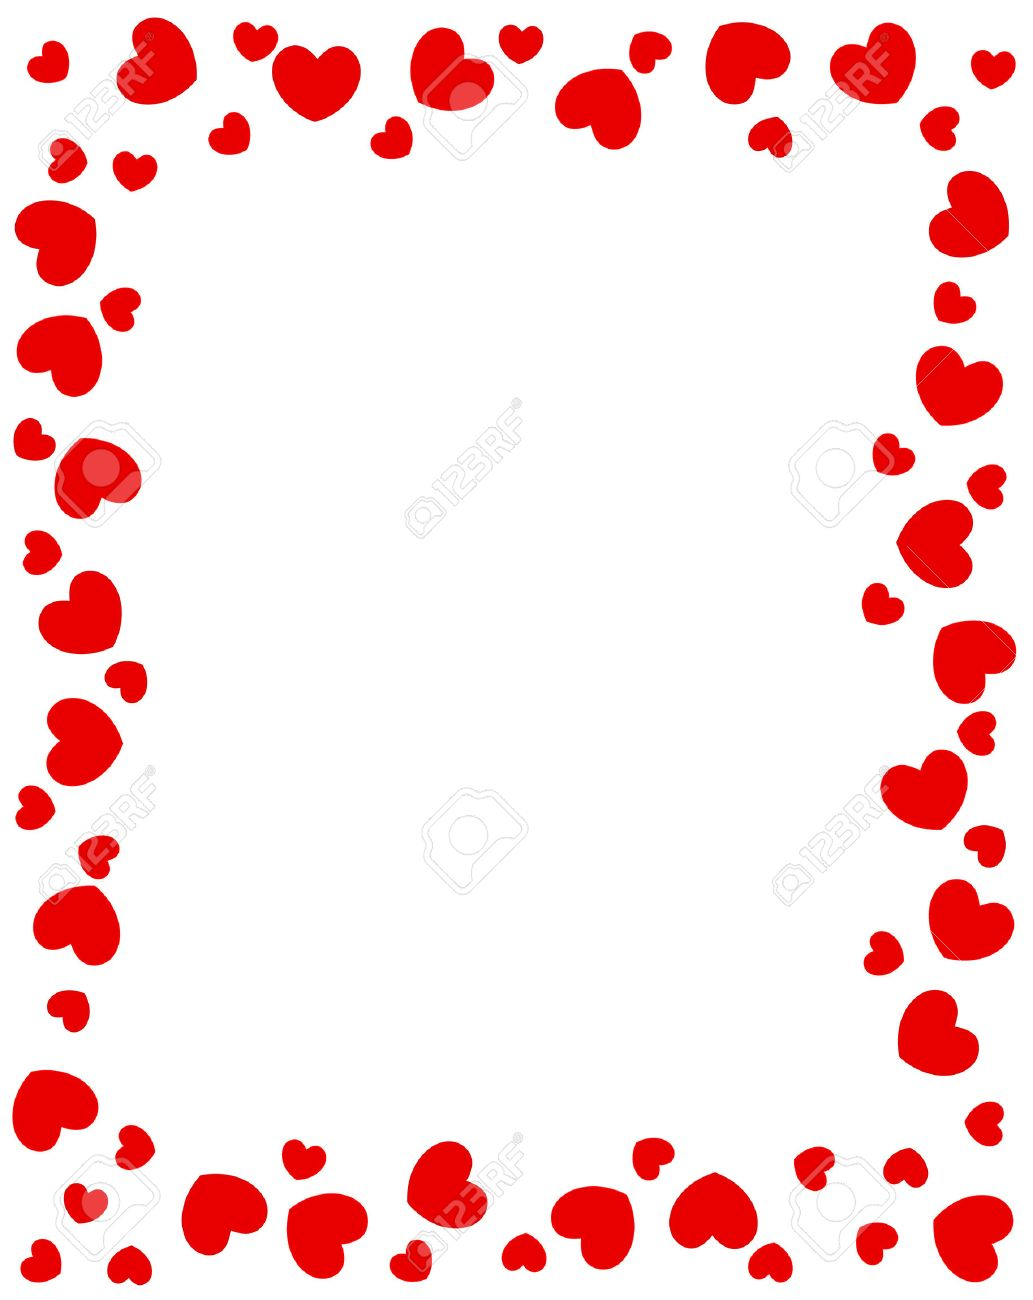 Red Hearts Border For Valentines Day Designs Royalty Free Cliparts